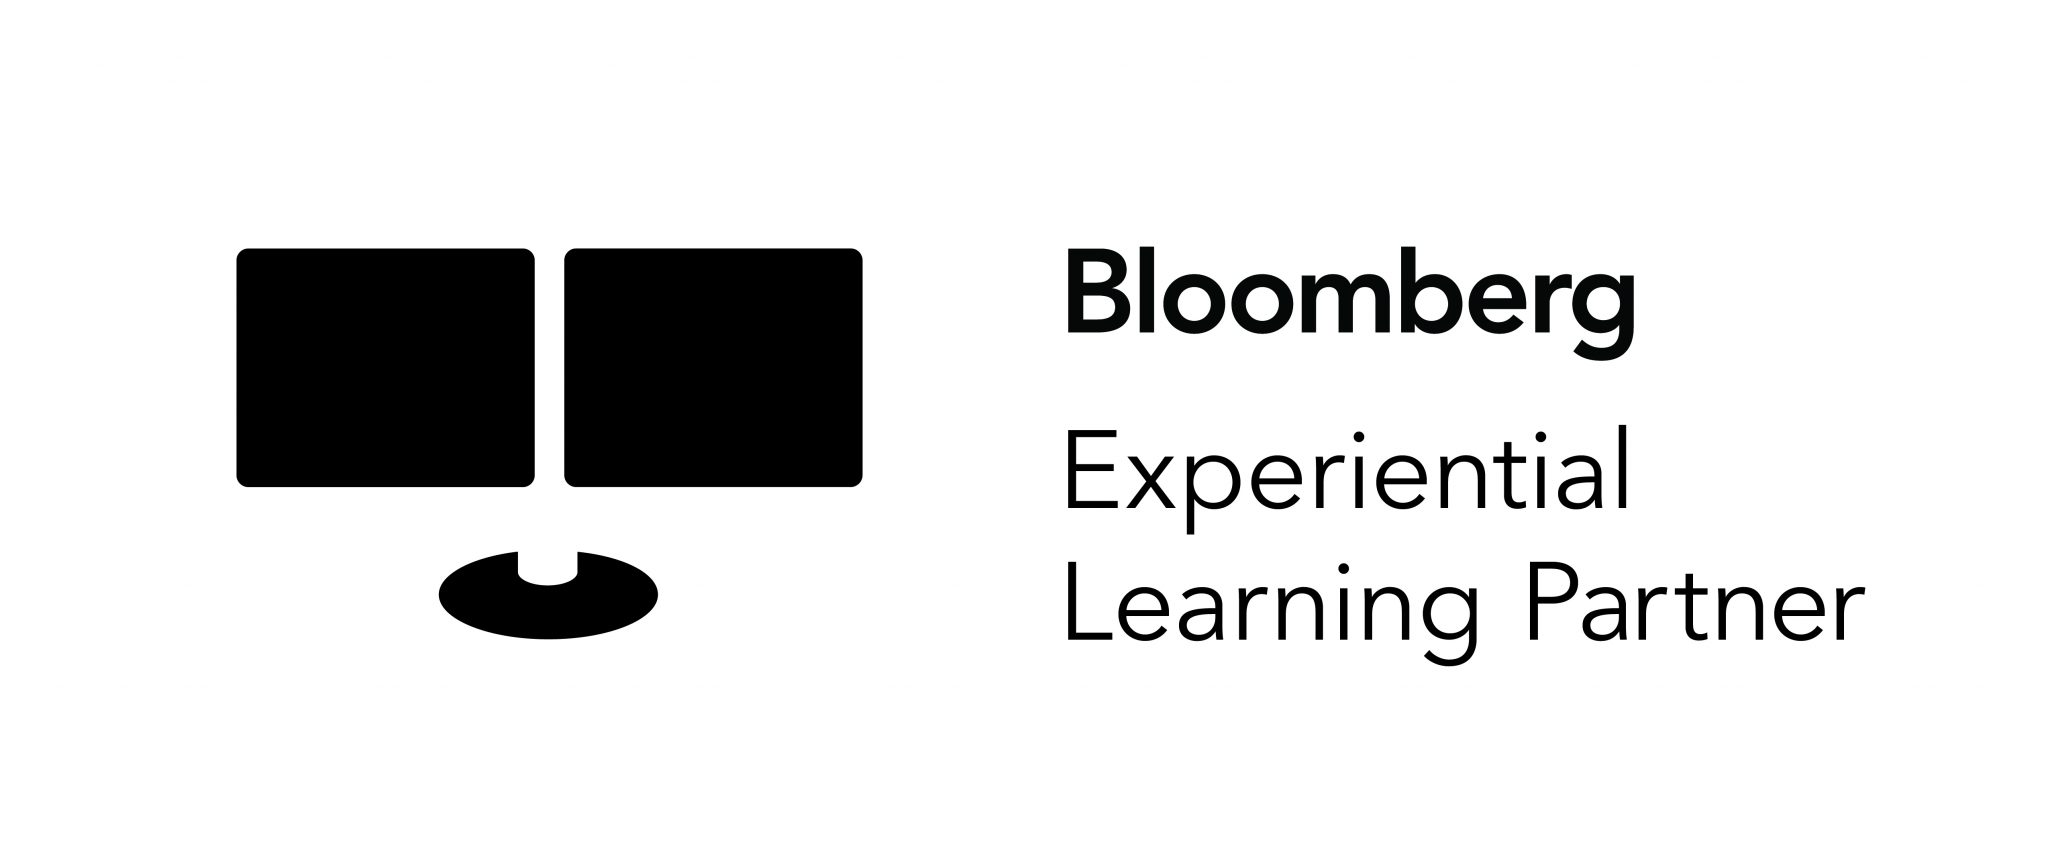 BBGT_EDU_Experiential_Learning_Partner_LOGO-01